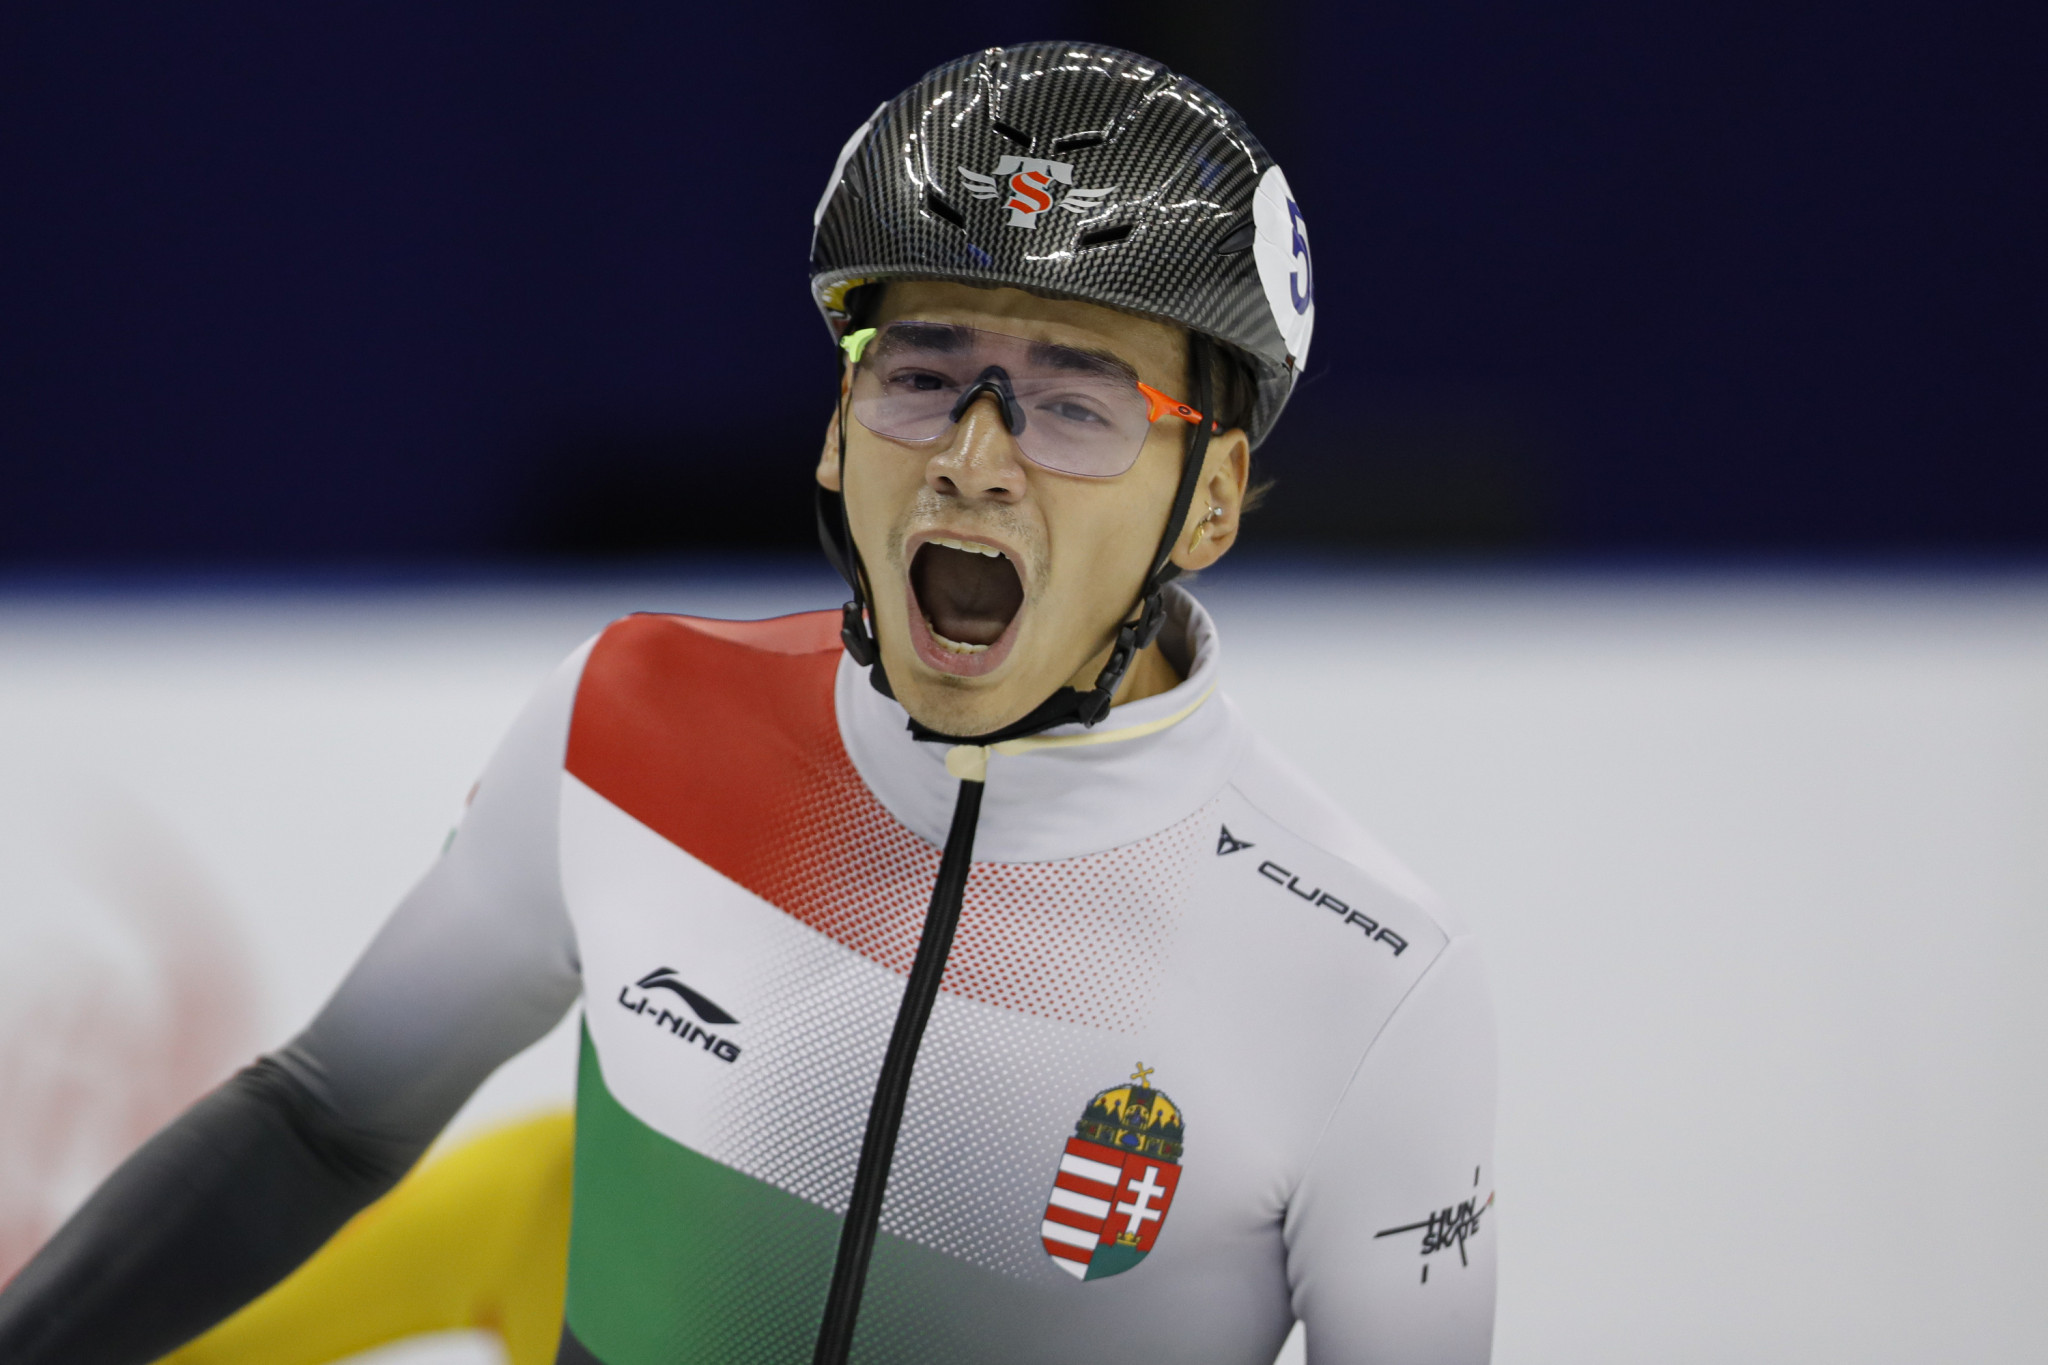 Shaolin Sándor Liu won 500m gold at the ISU Short Track European Championships ©Getty Images